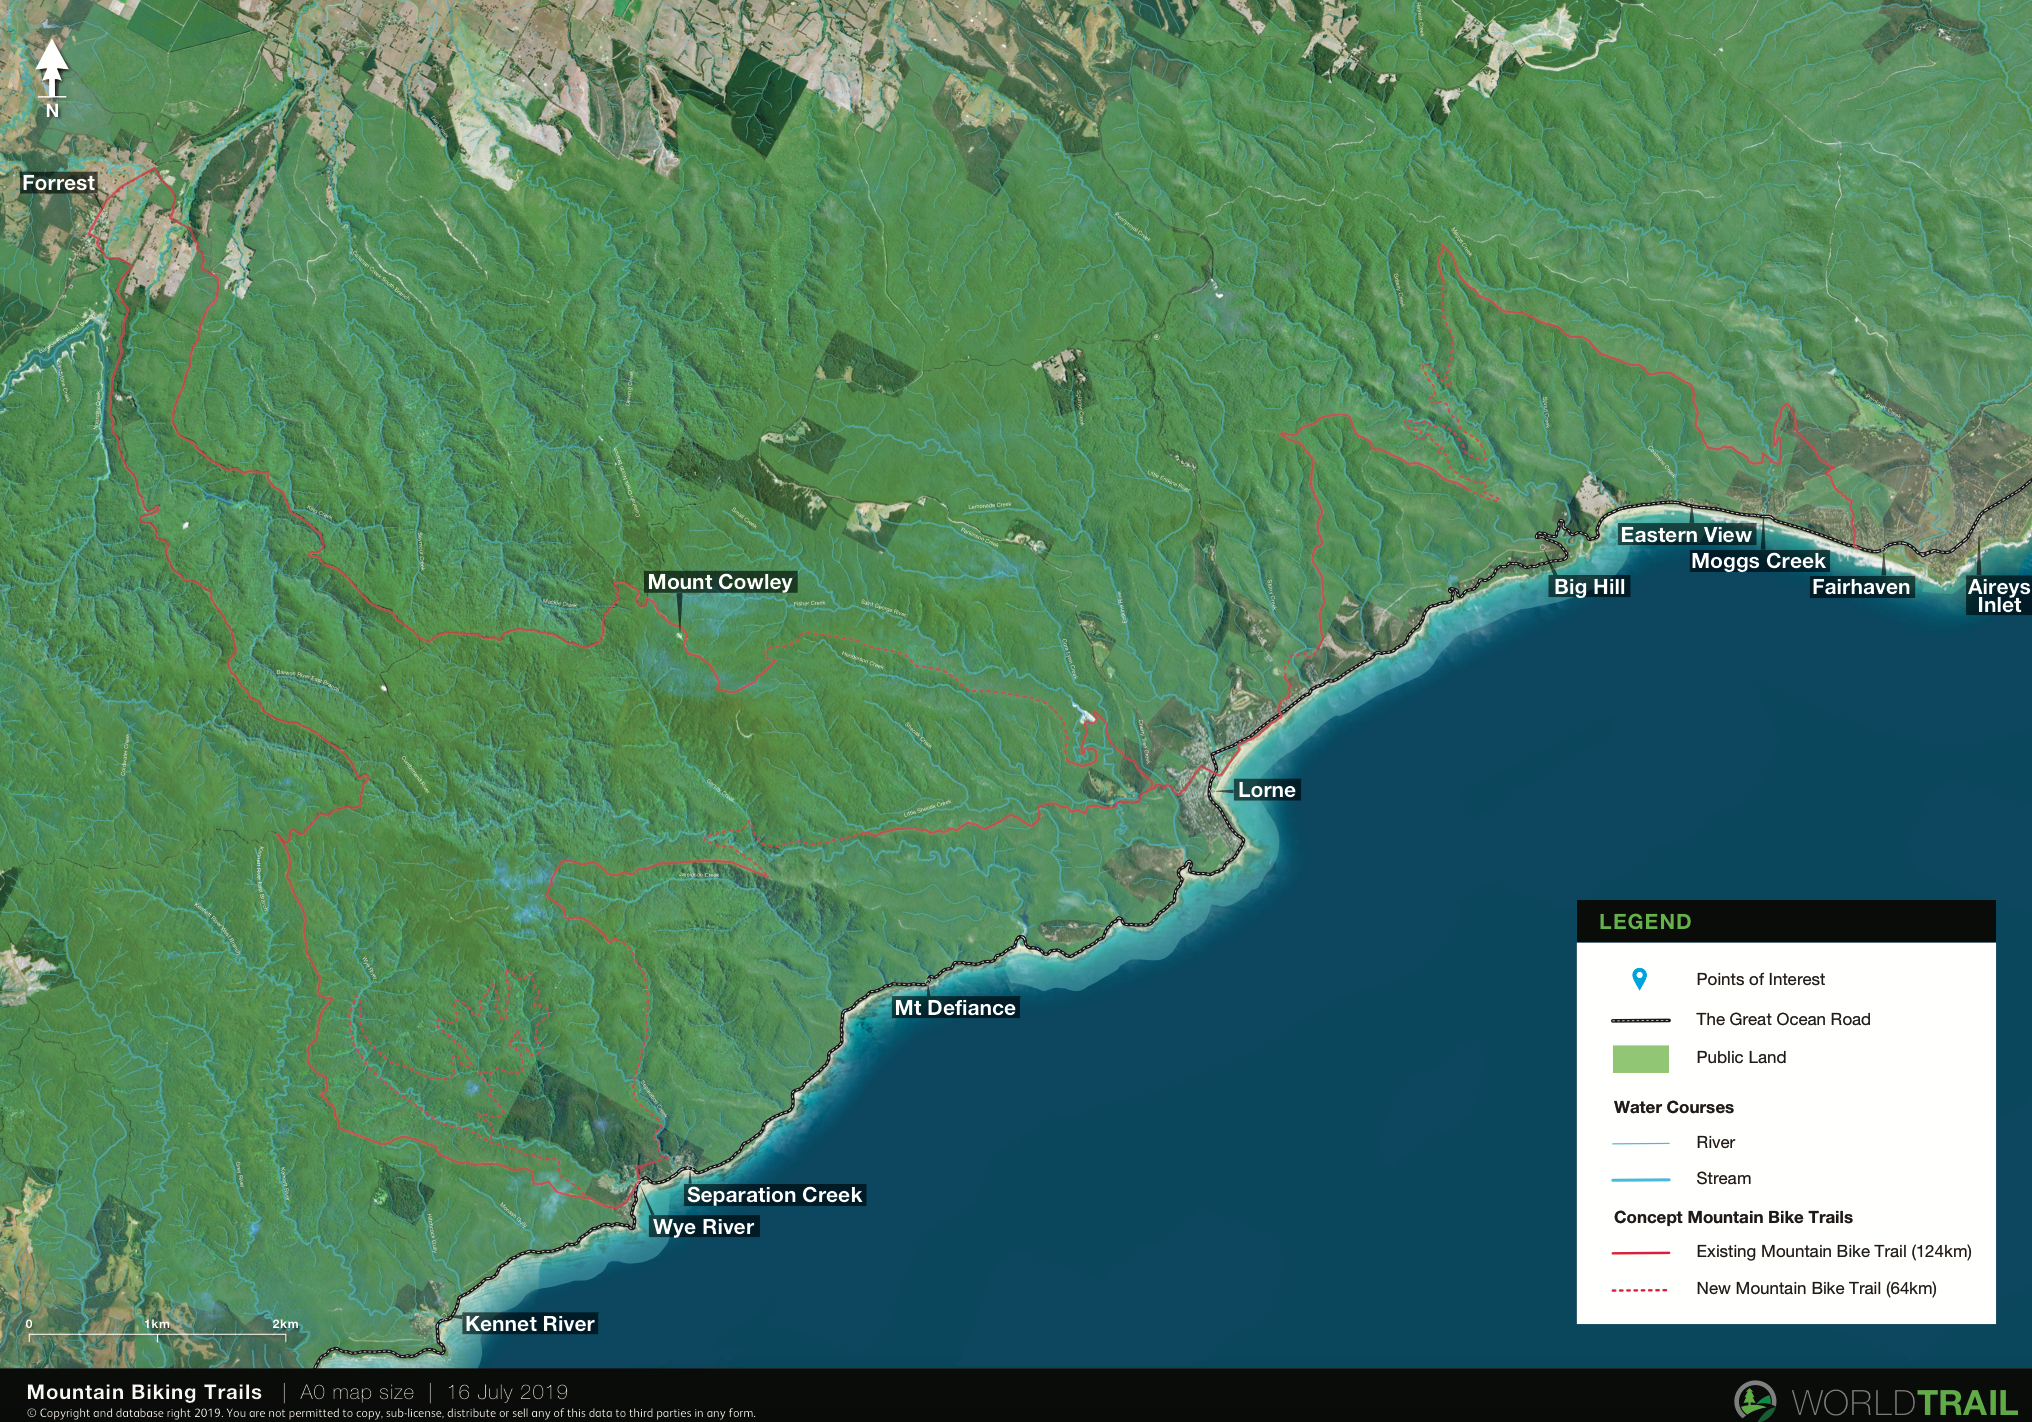 Draft concept map for mountain biking trails that connect with Forrest, Fairhaven, Lorne and Wye River in the Great Ocean Road region